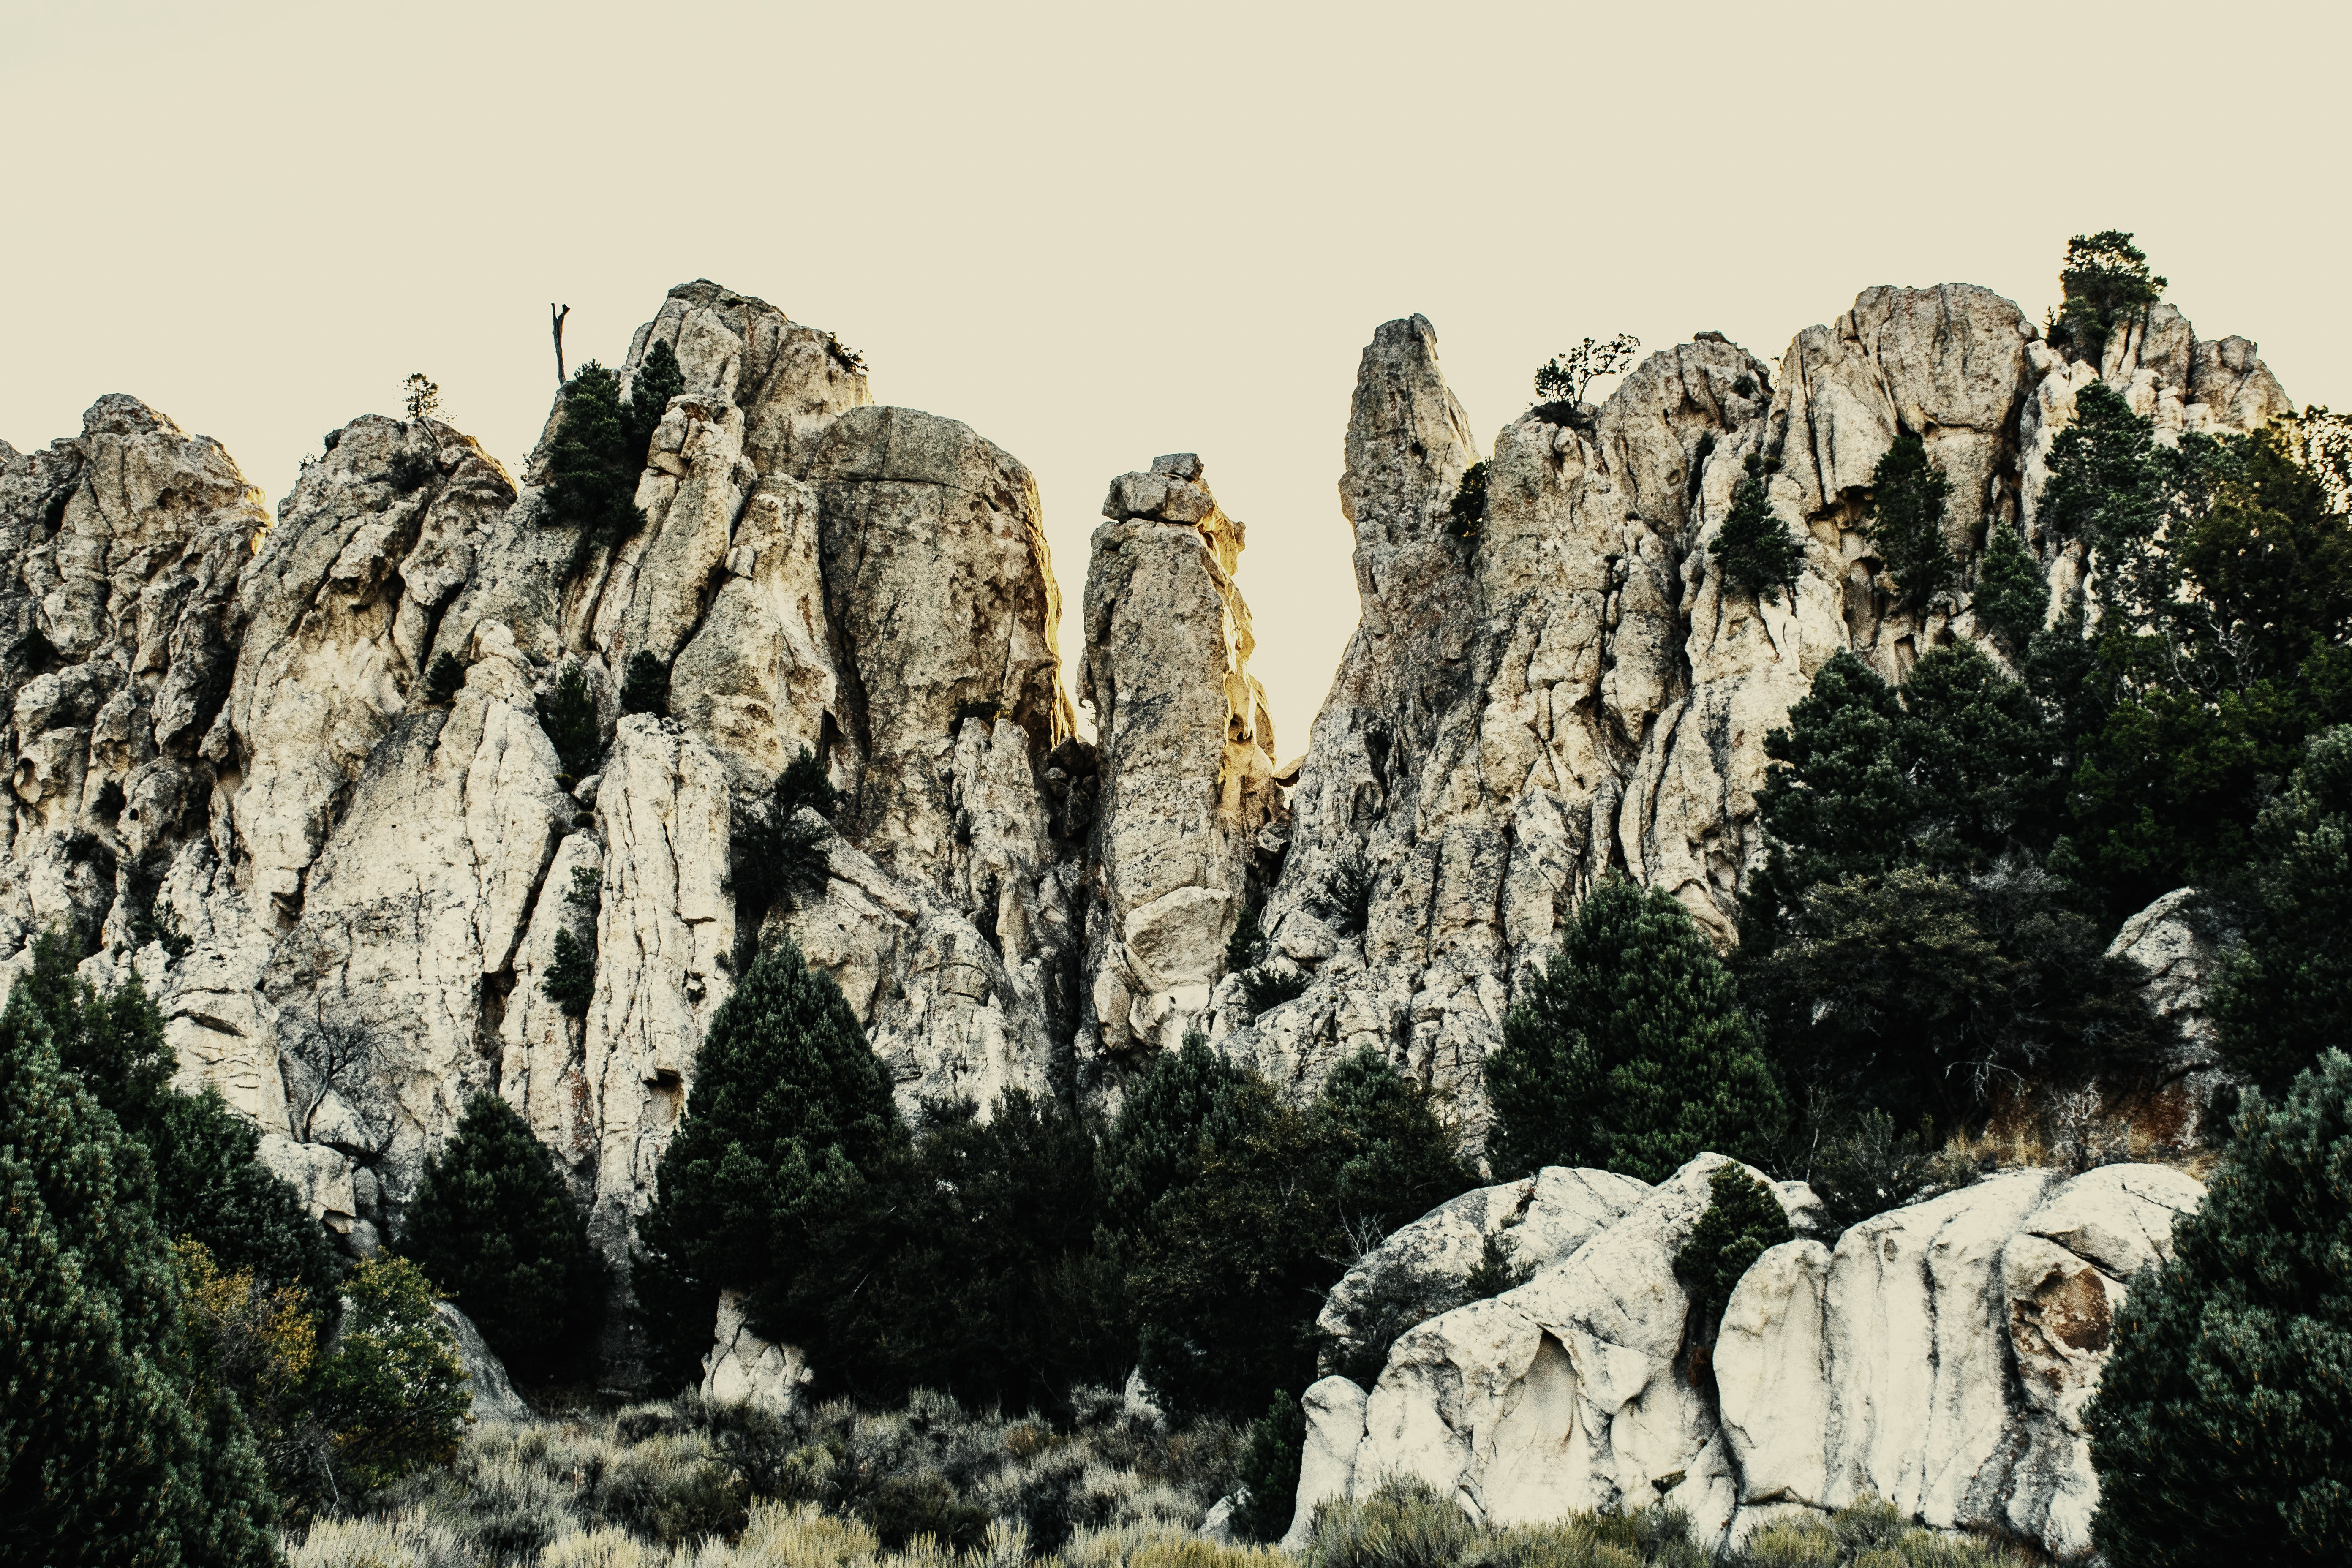 Free stock photo of rock formation